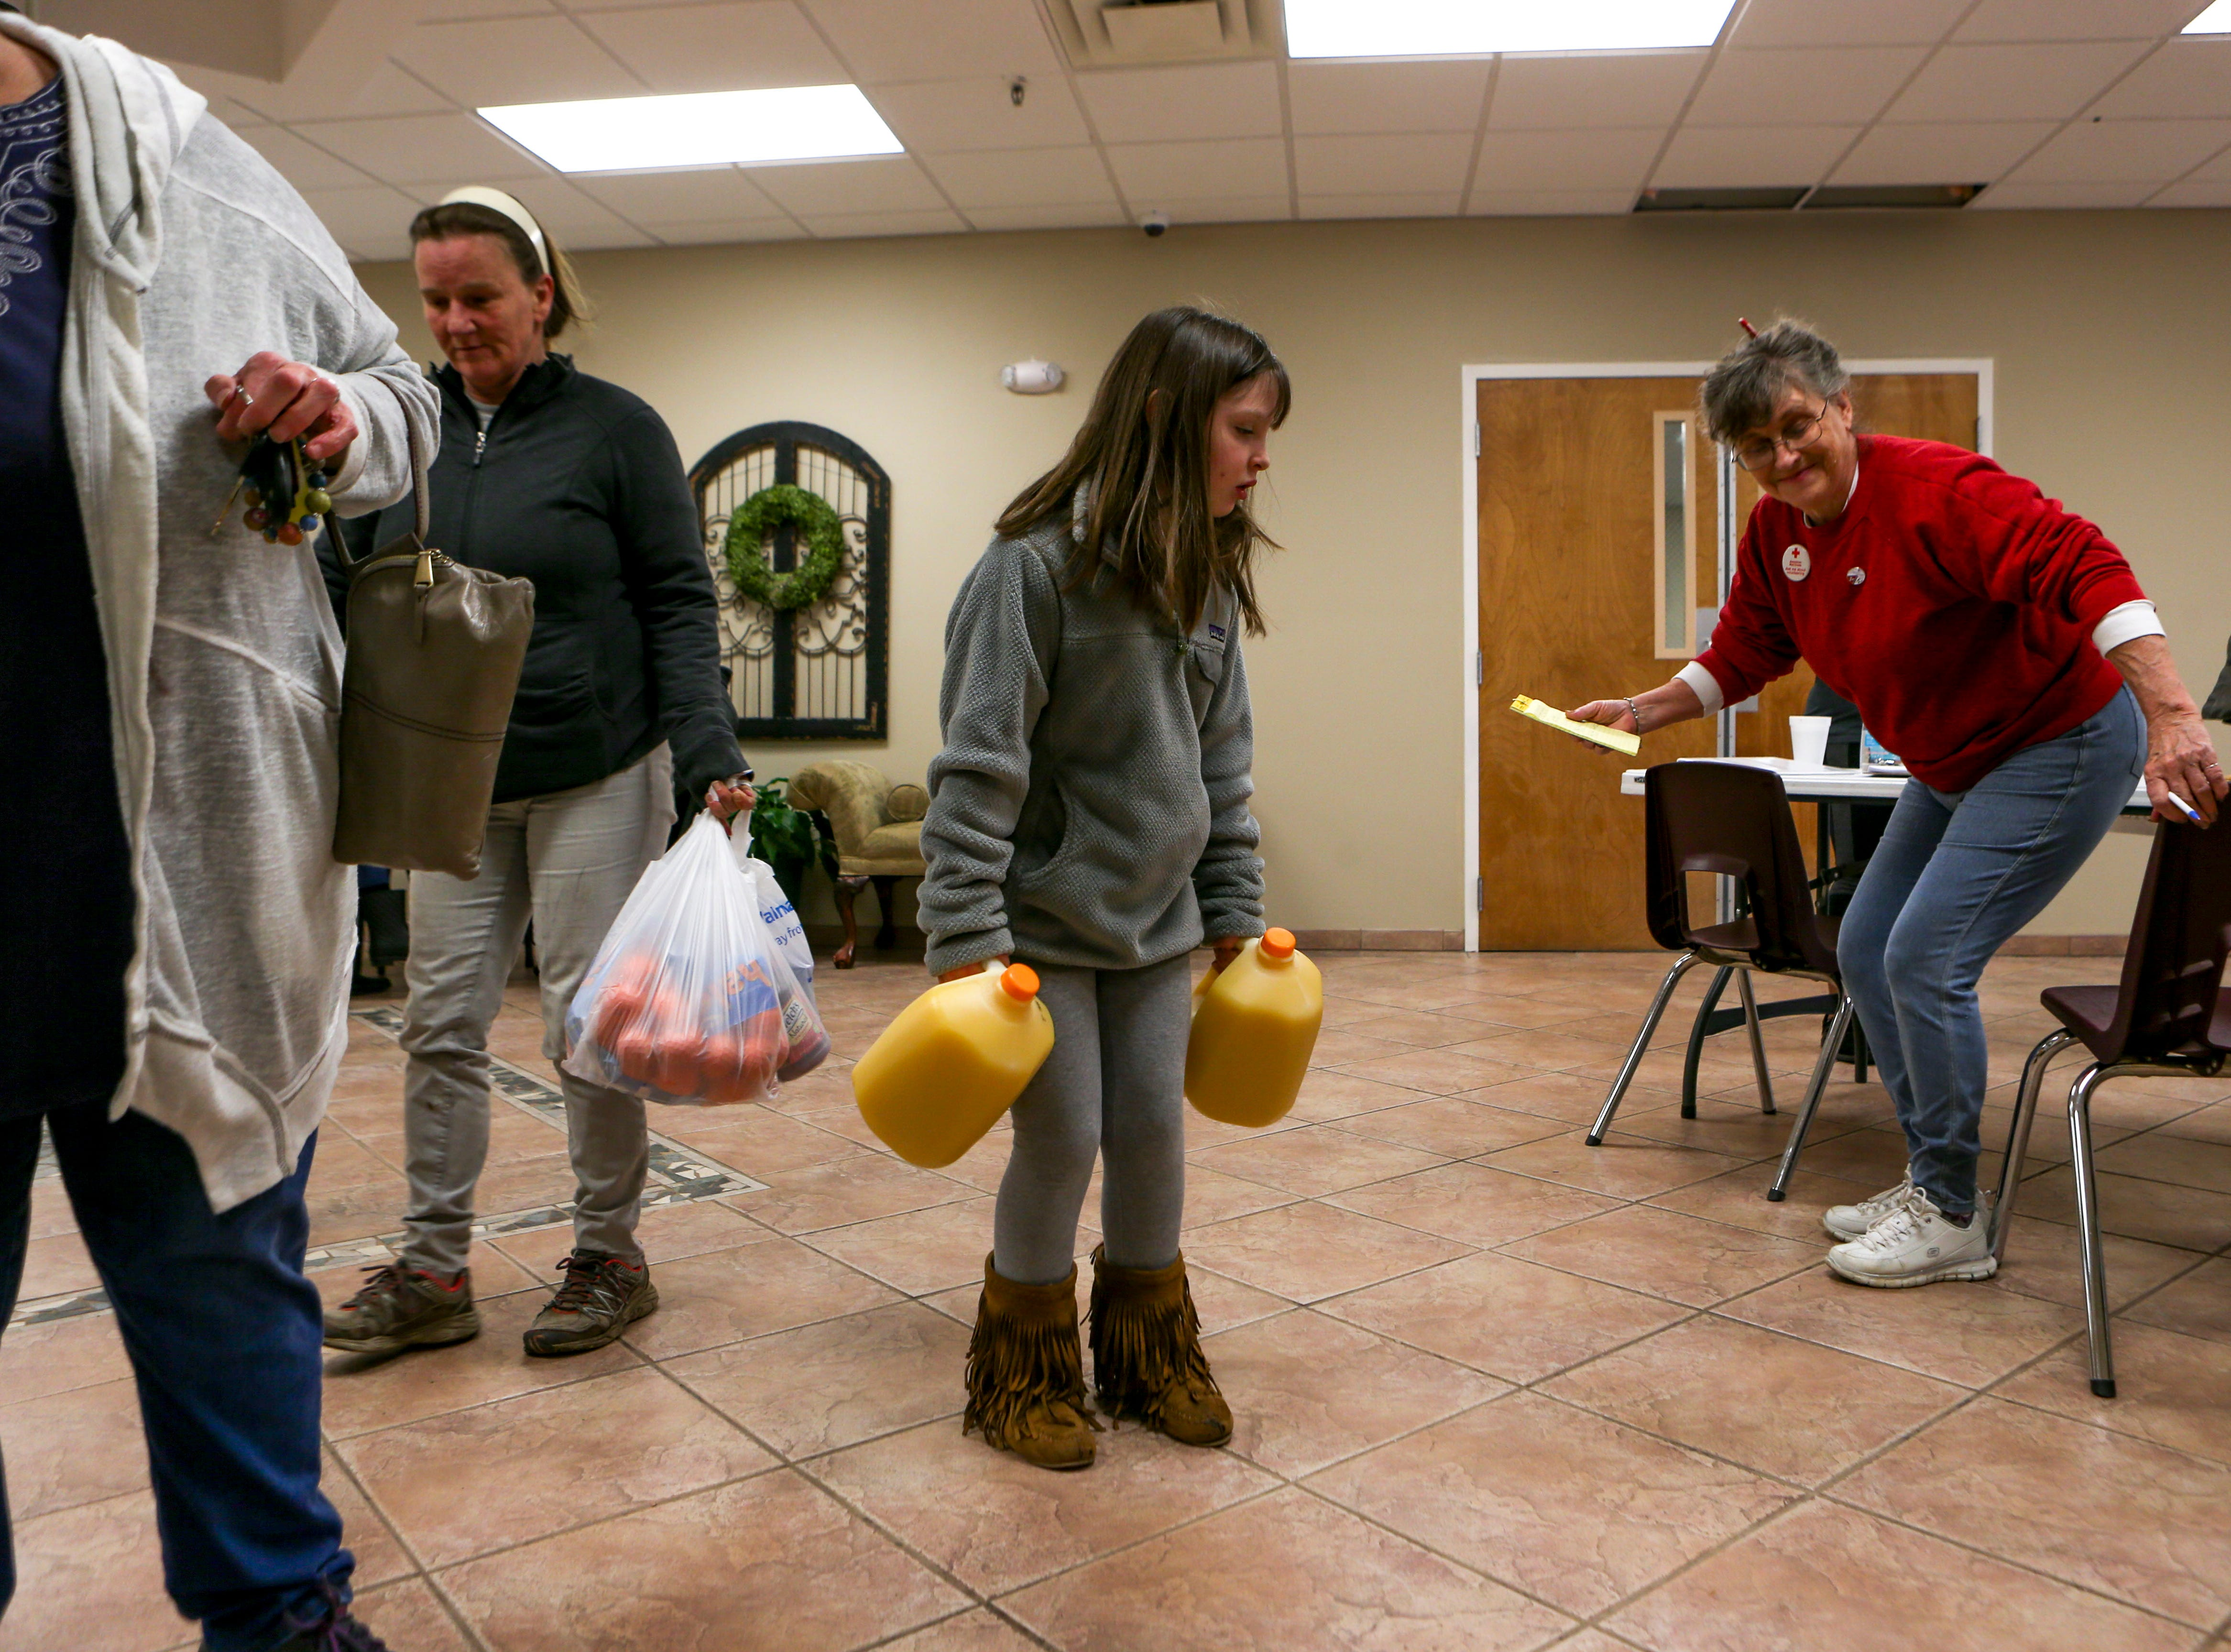 Natalie Seaton, 7, brings in jugs of orange juice to donate to The American Red Cross shelter established at Savannah Church of Christ, in Savannah, Tenn., on Monday, Feb. 25, 2019.